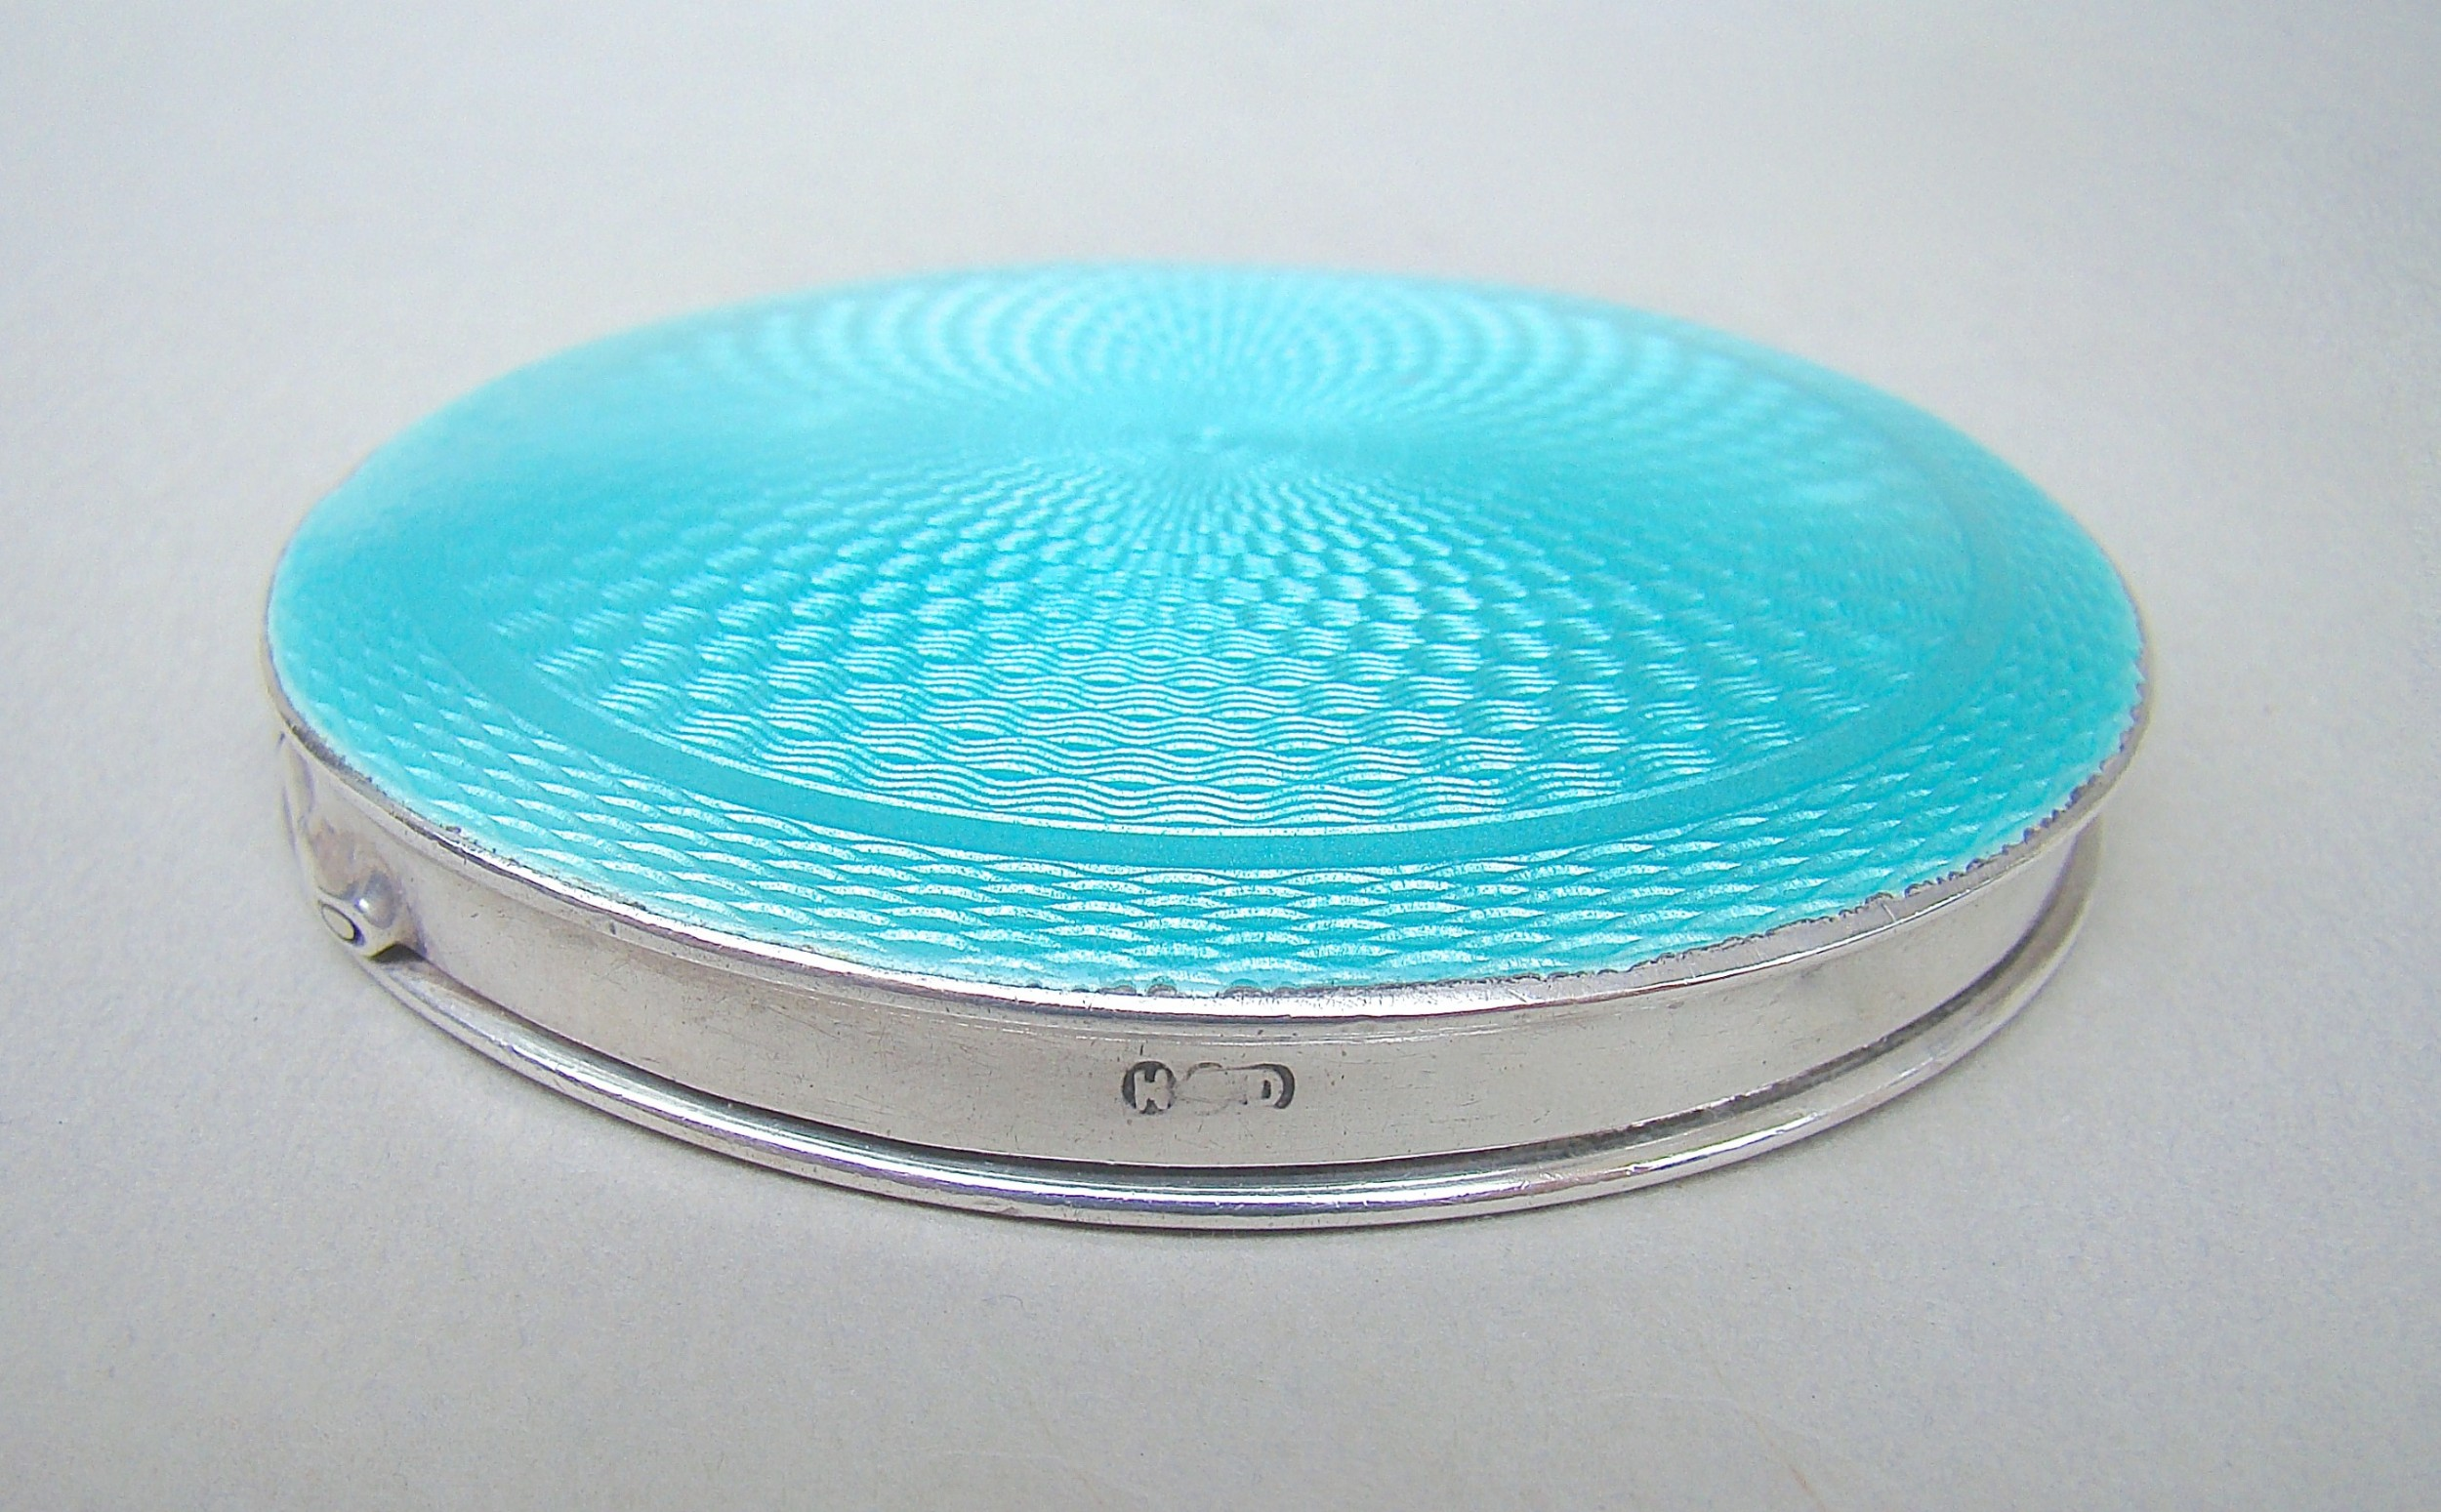 art deco silver and guilloche enamel compact by henry clifford davis birmingham 1922